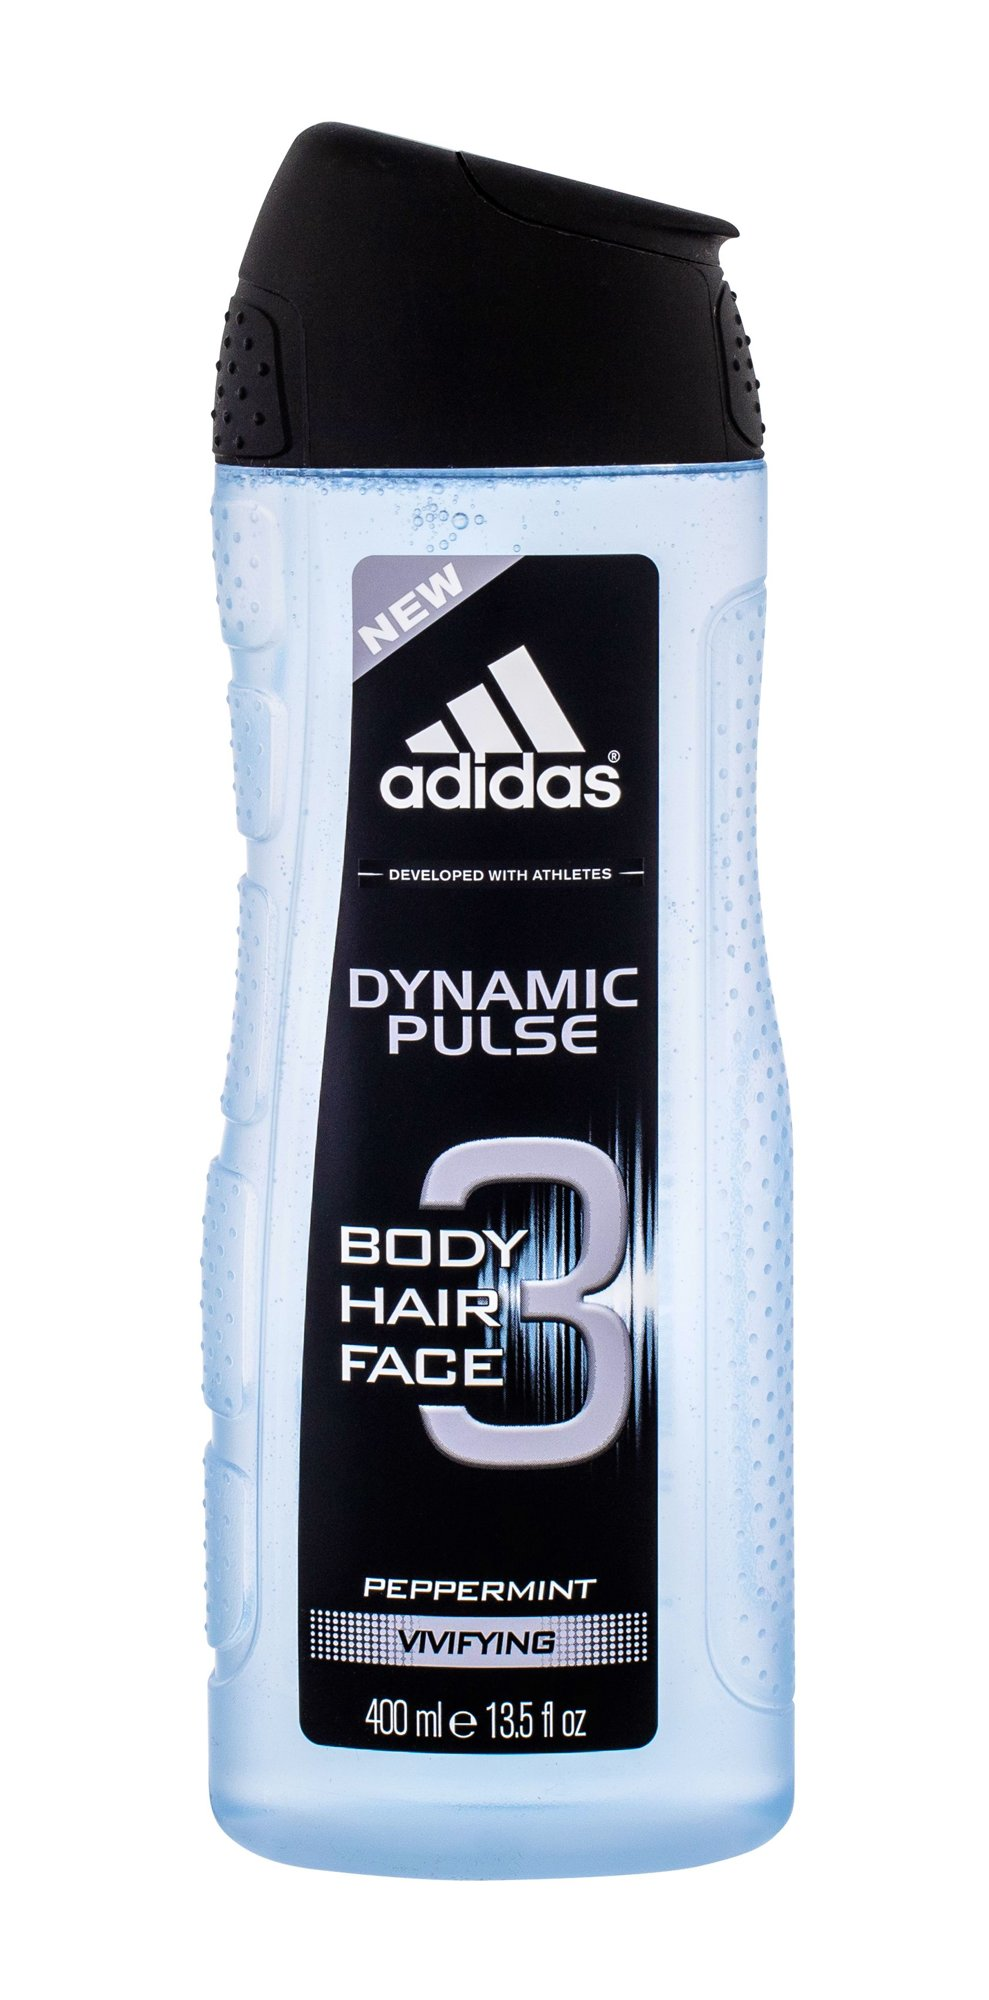 Adidas Dynamic Pulse Shower gel 400ml